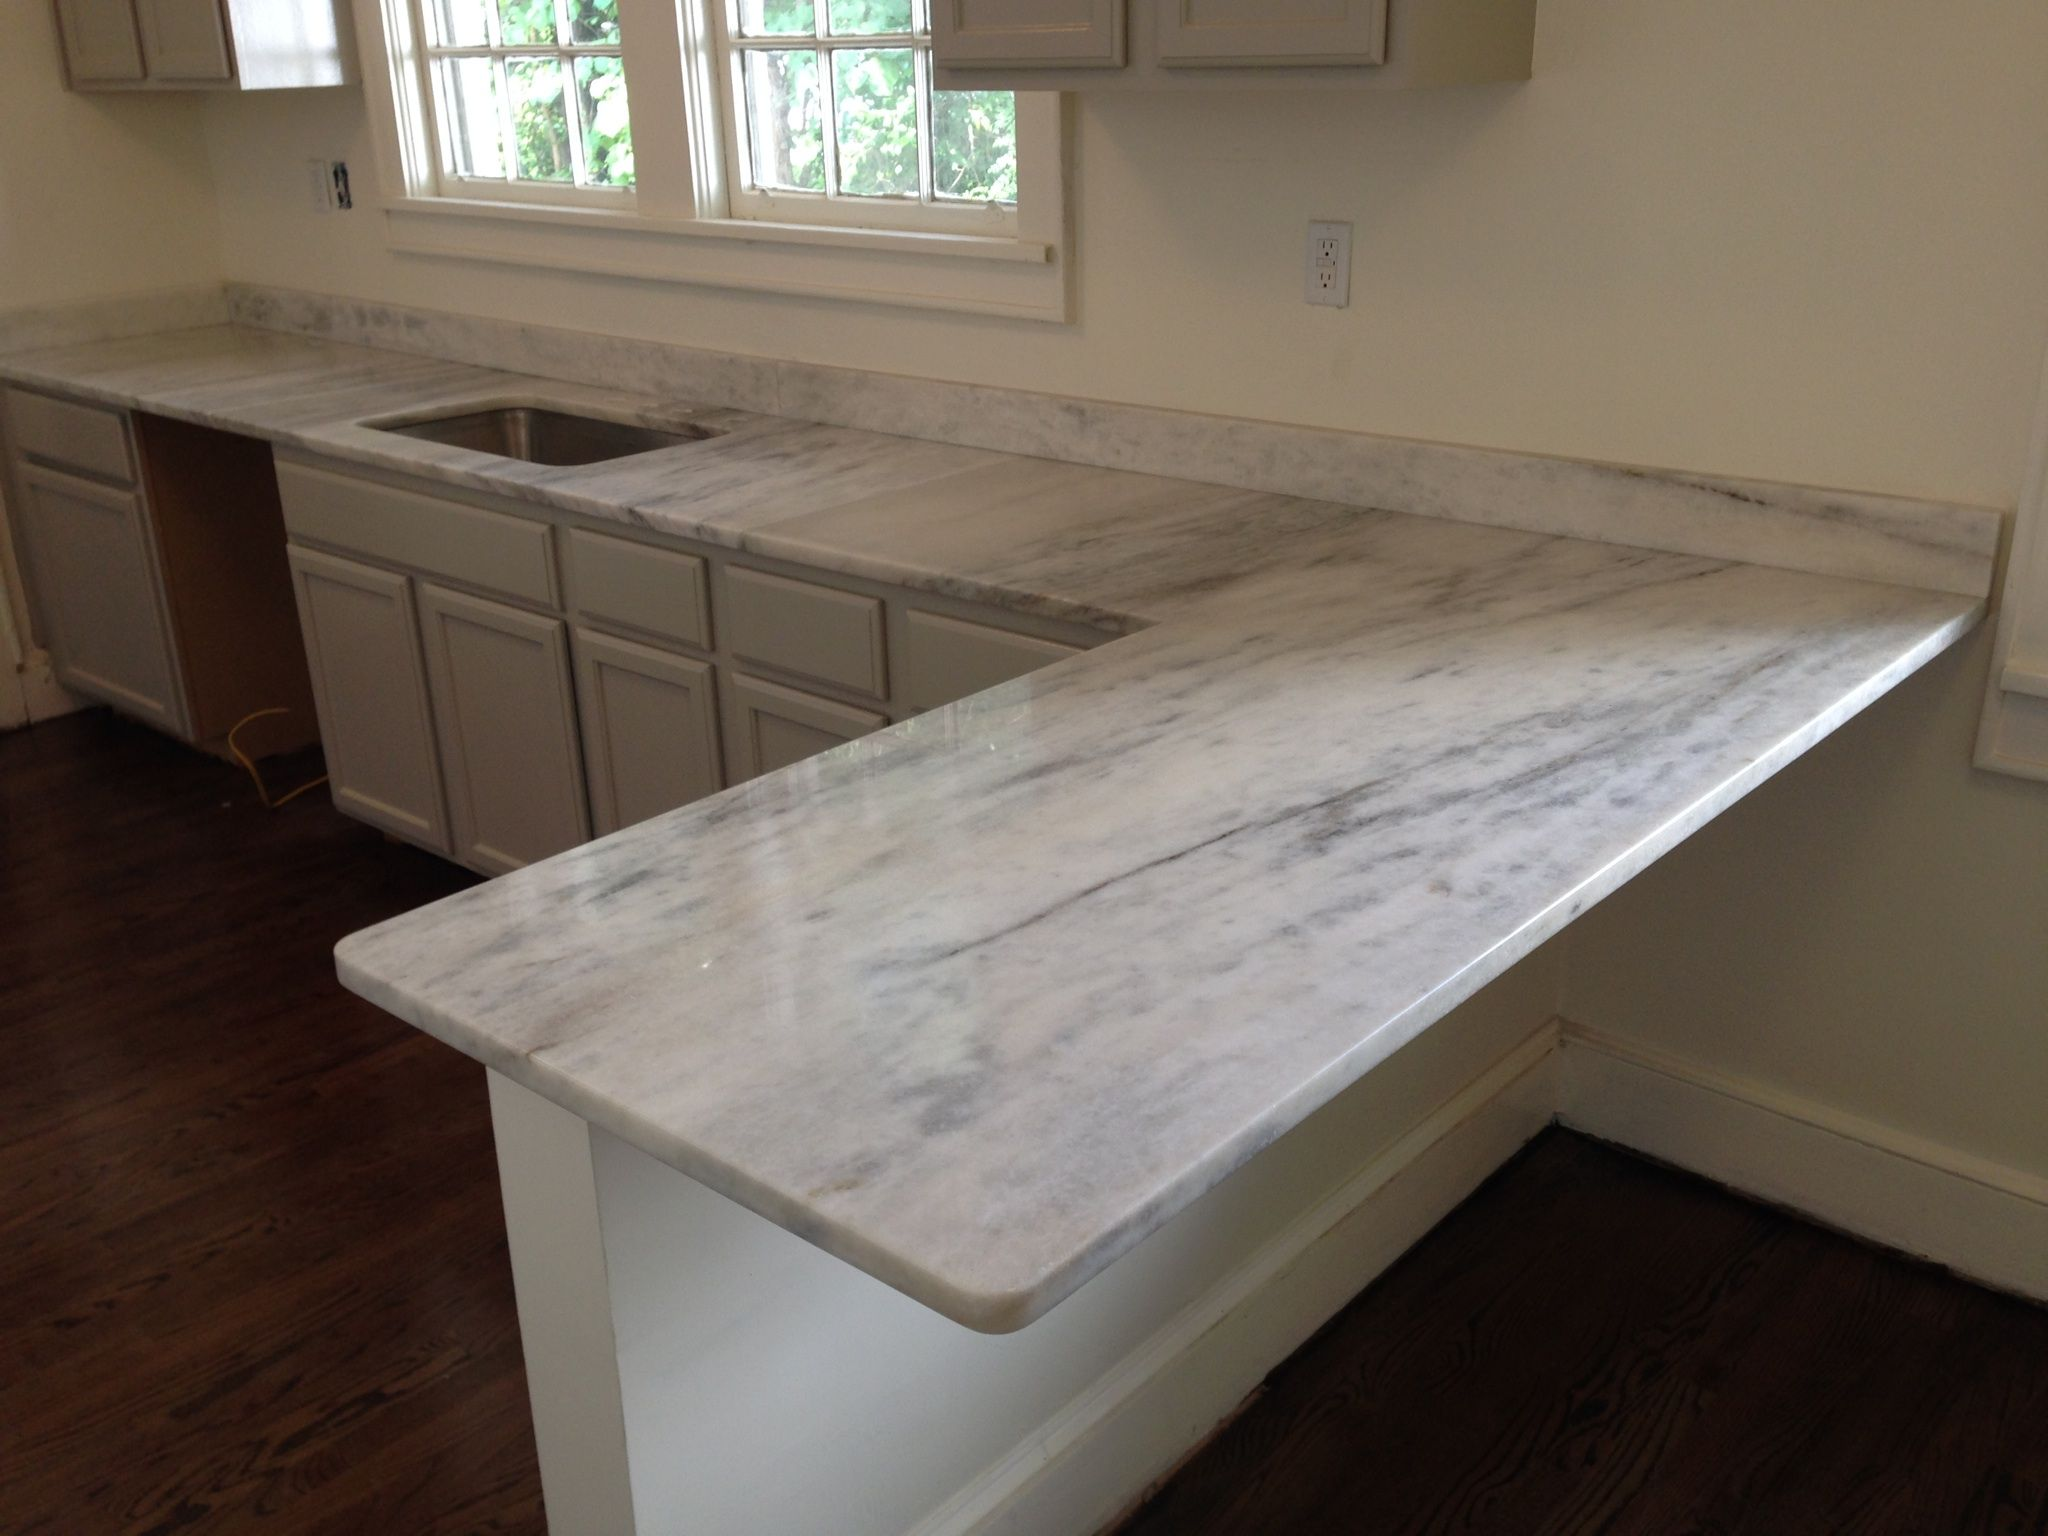 marble kitchen countertops Marble kitchen countertops Kitchen ideas Marble kitchen countertops White marble Similar to